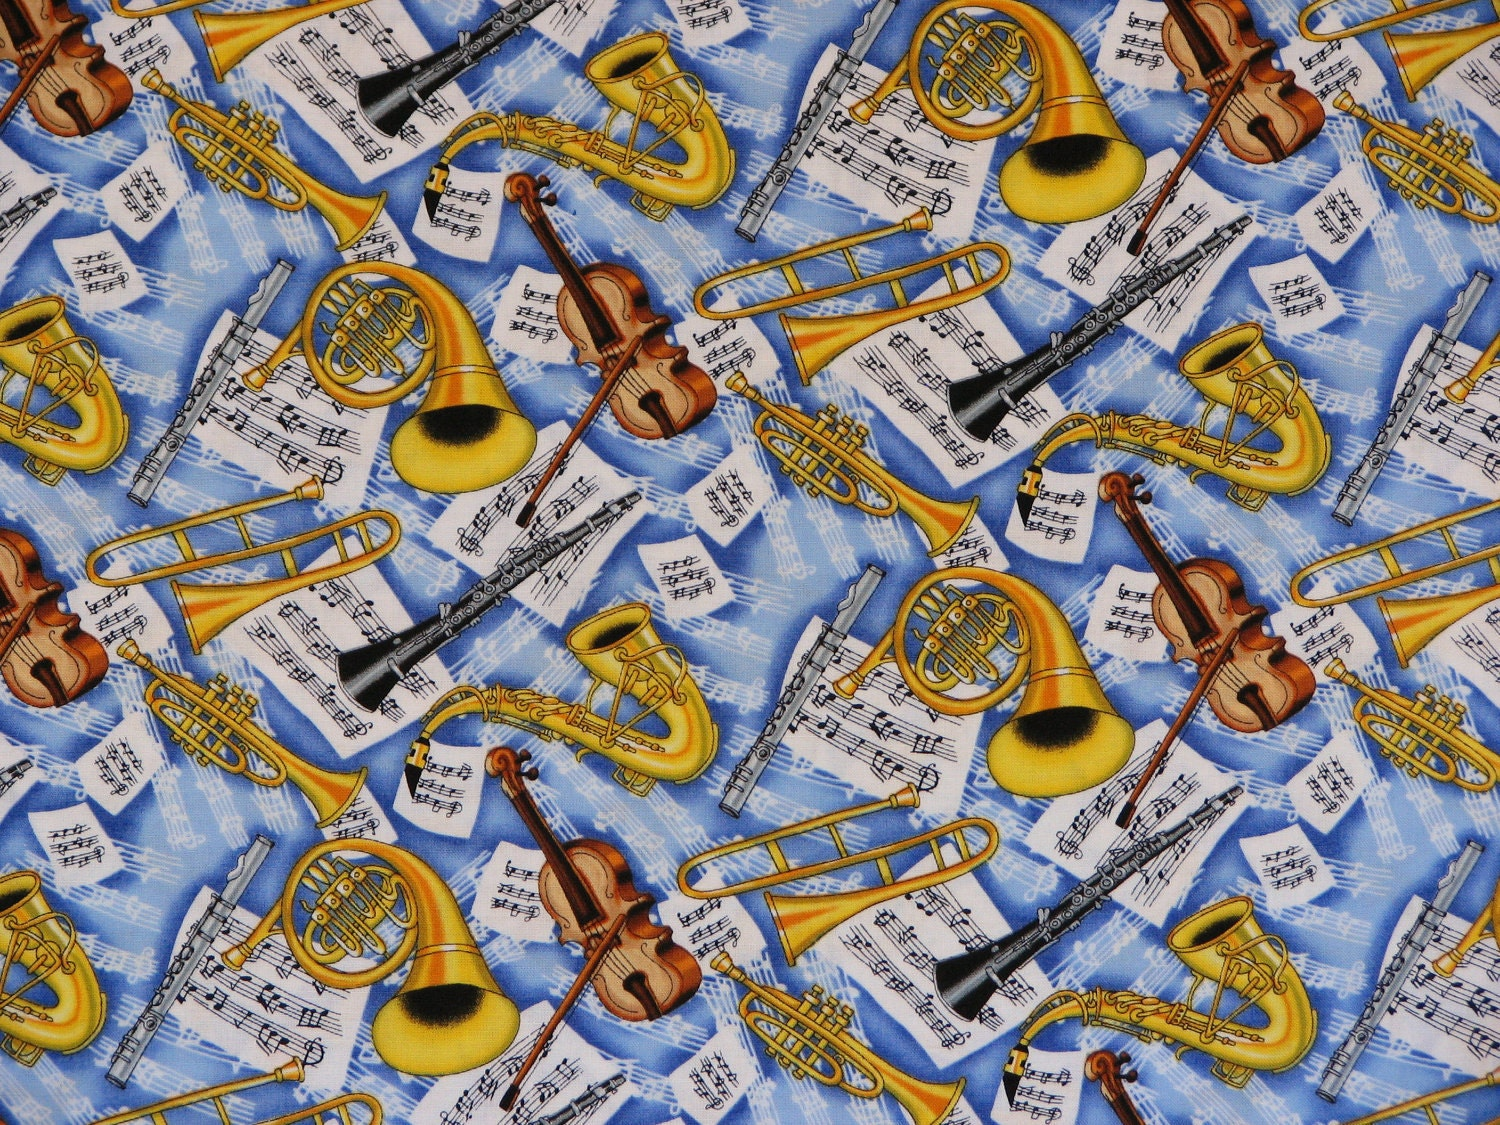 Music Instruments Music Notes Fabric Blue Cotton Fabric